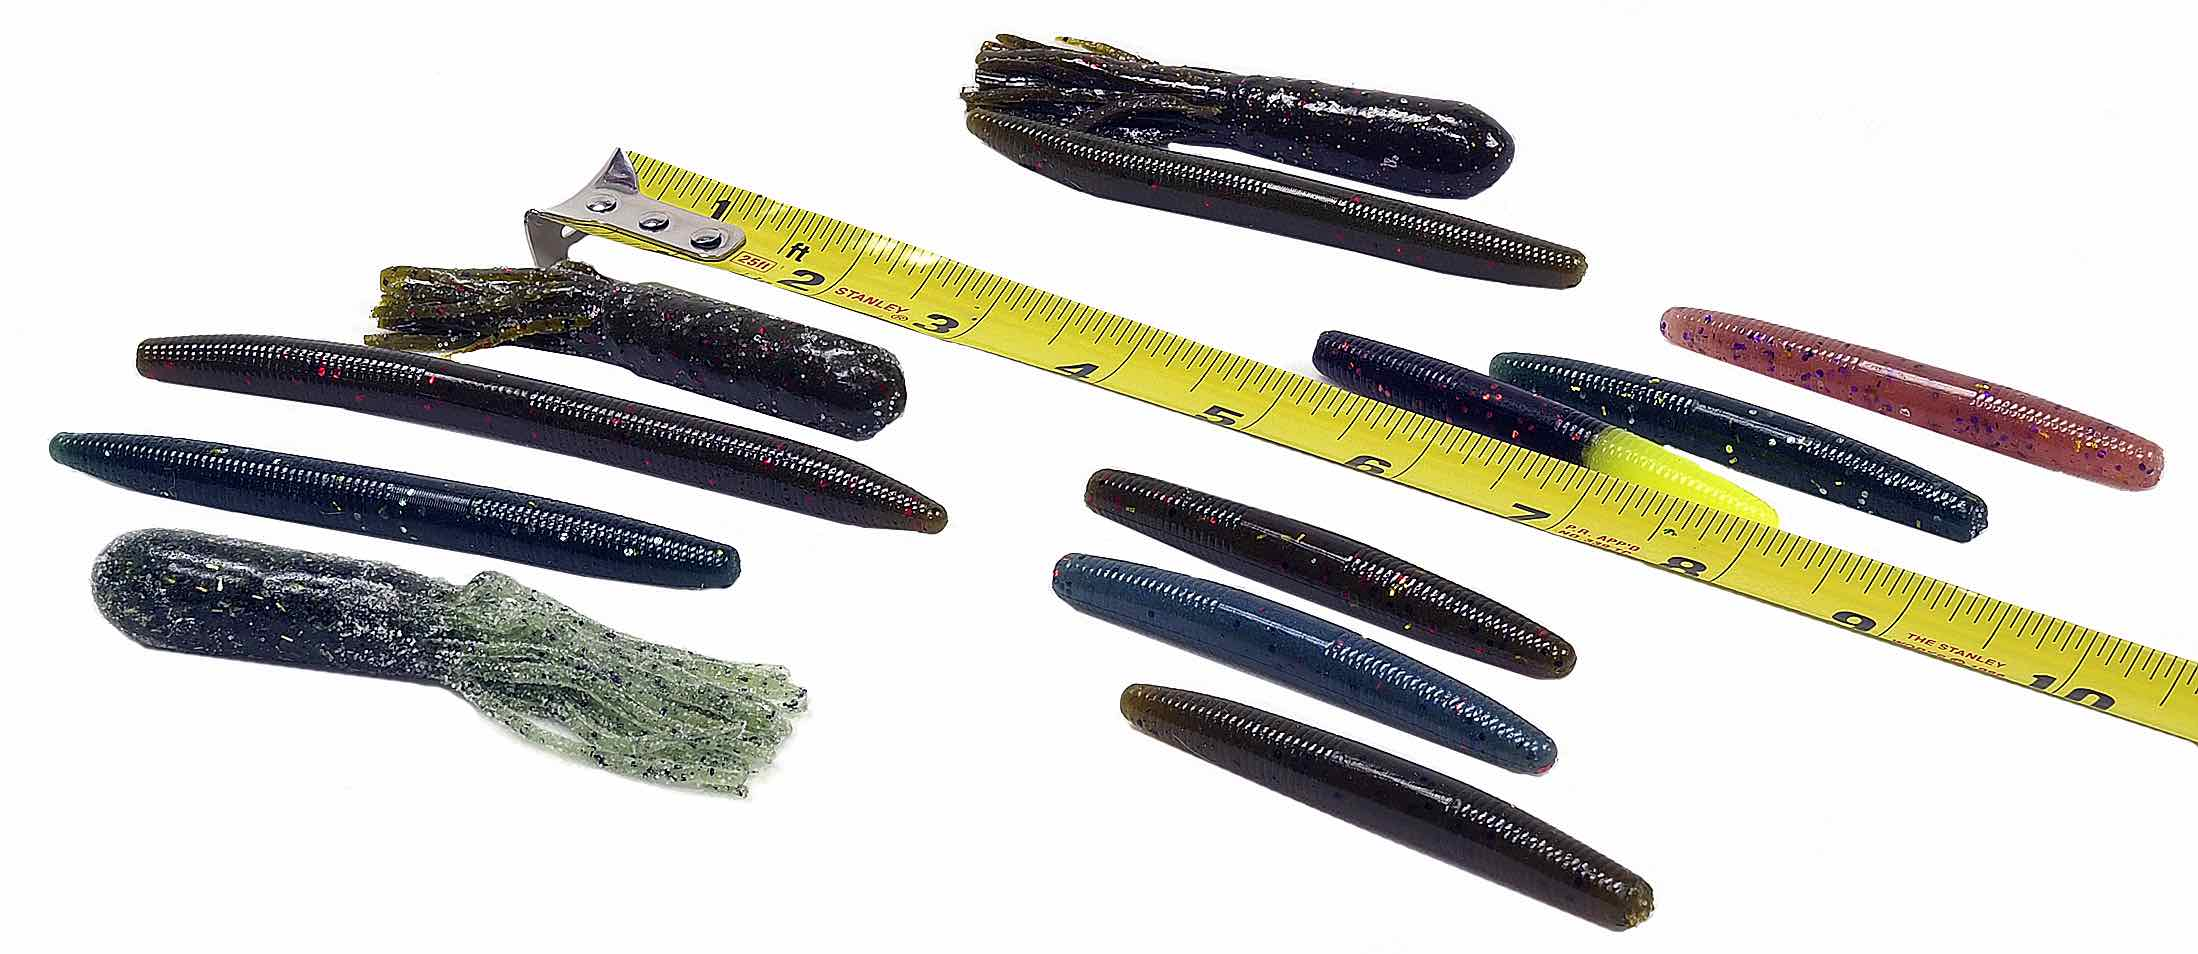 Lip-Locked-Baits-Soft-Plastic-Assortment